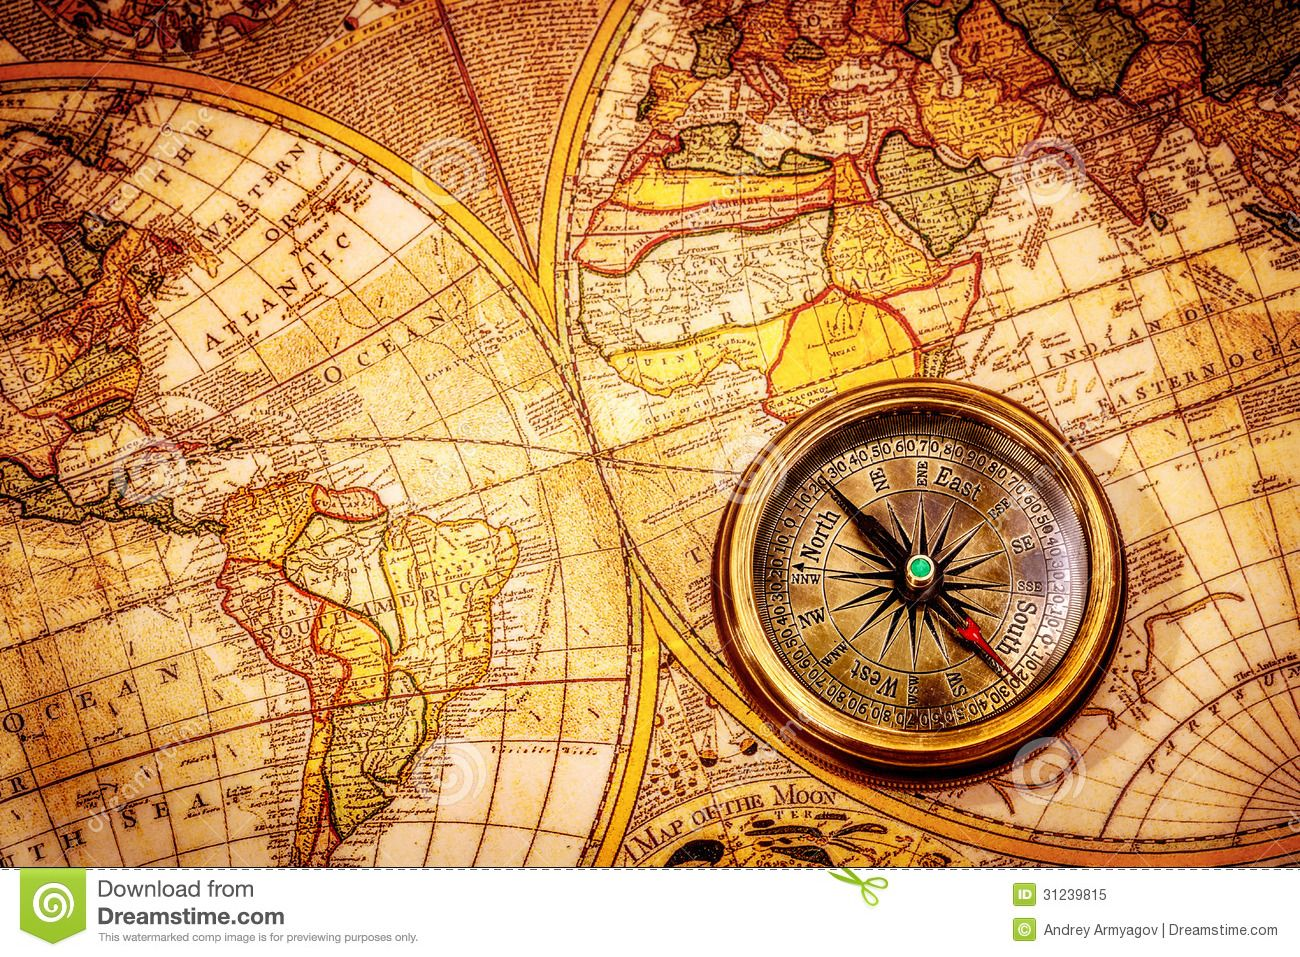 Free stock vintage google search gothvictoriansteampunk free stock vintage google search map compasscompass tattoocompass rosevintage world gumiabroncs Images